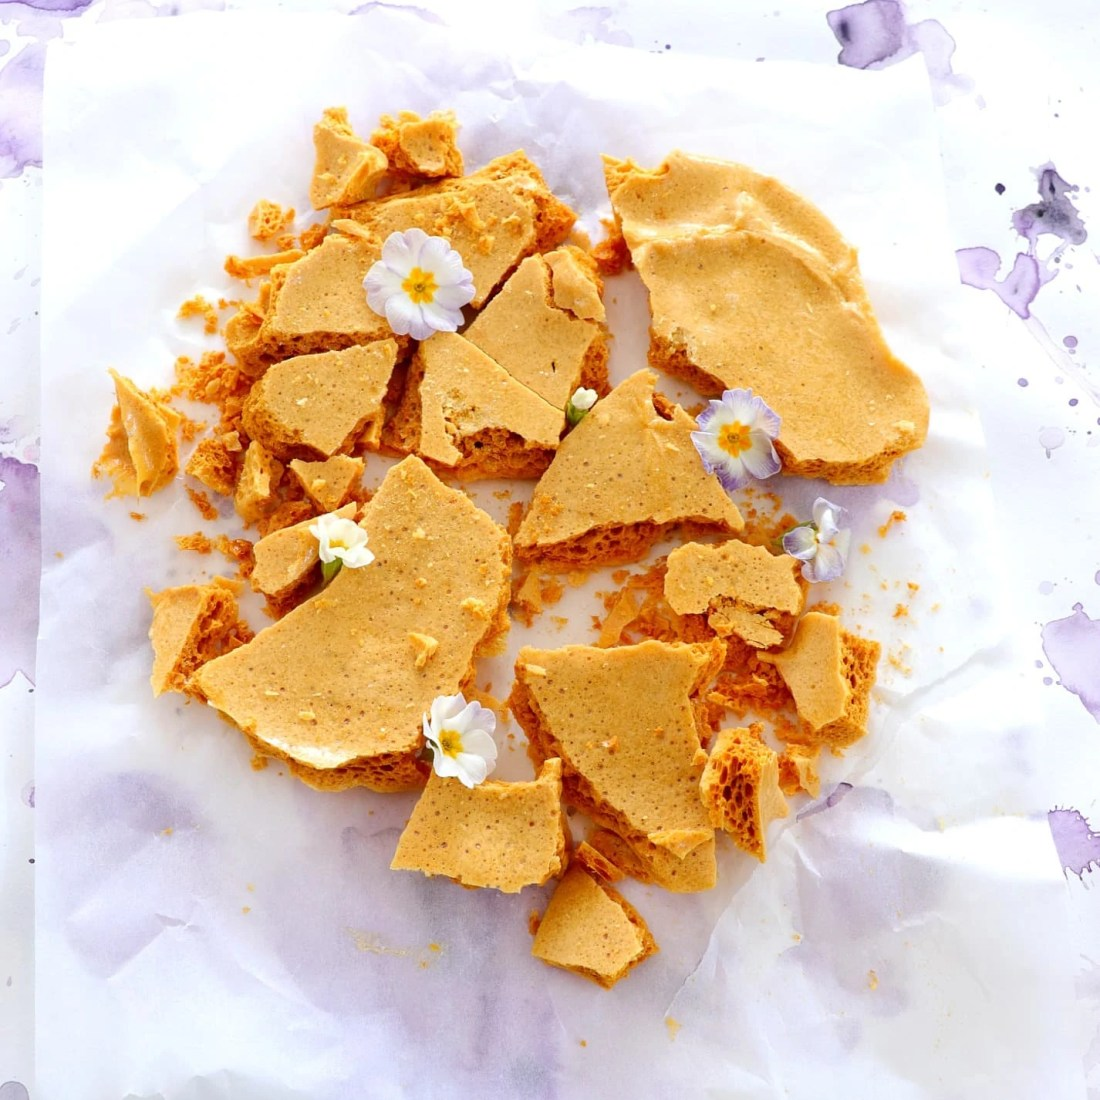 Crispy Honeycomb Shards